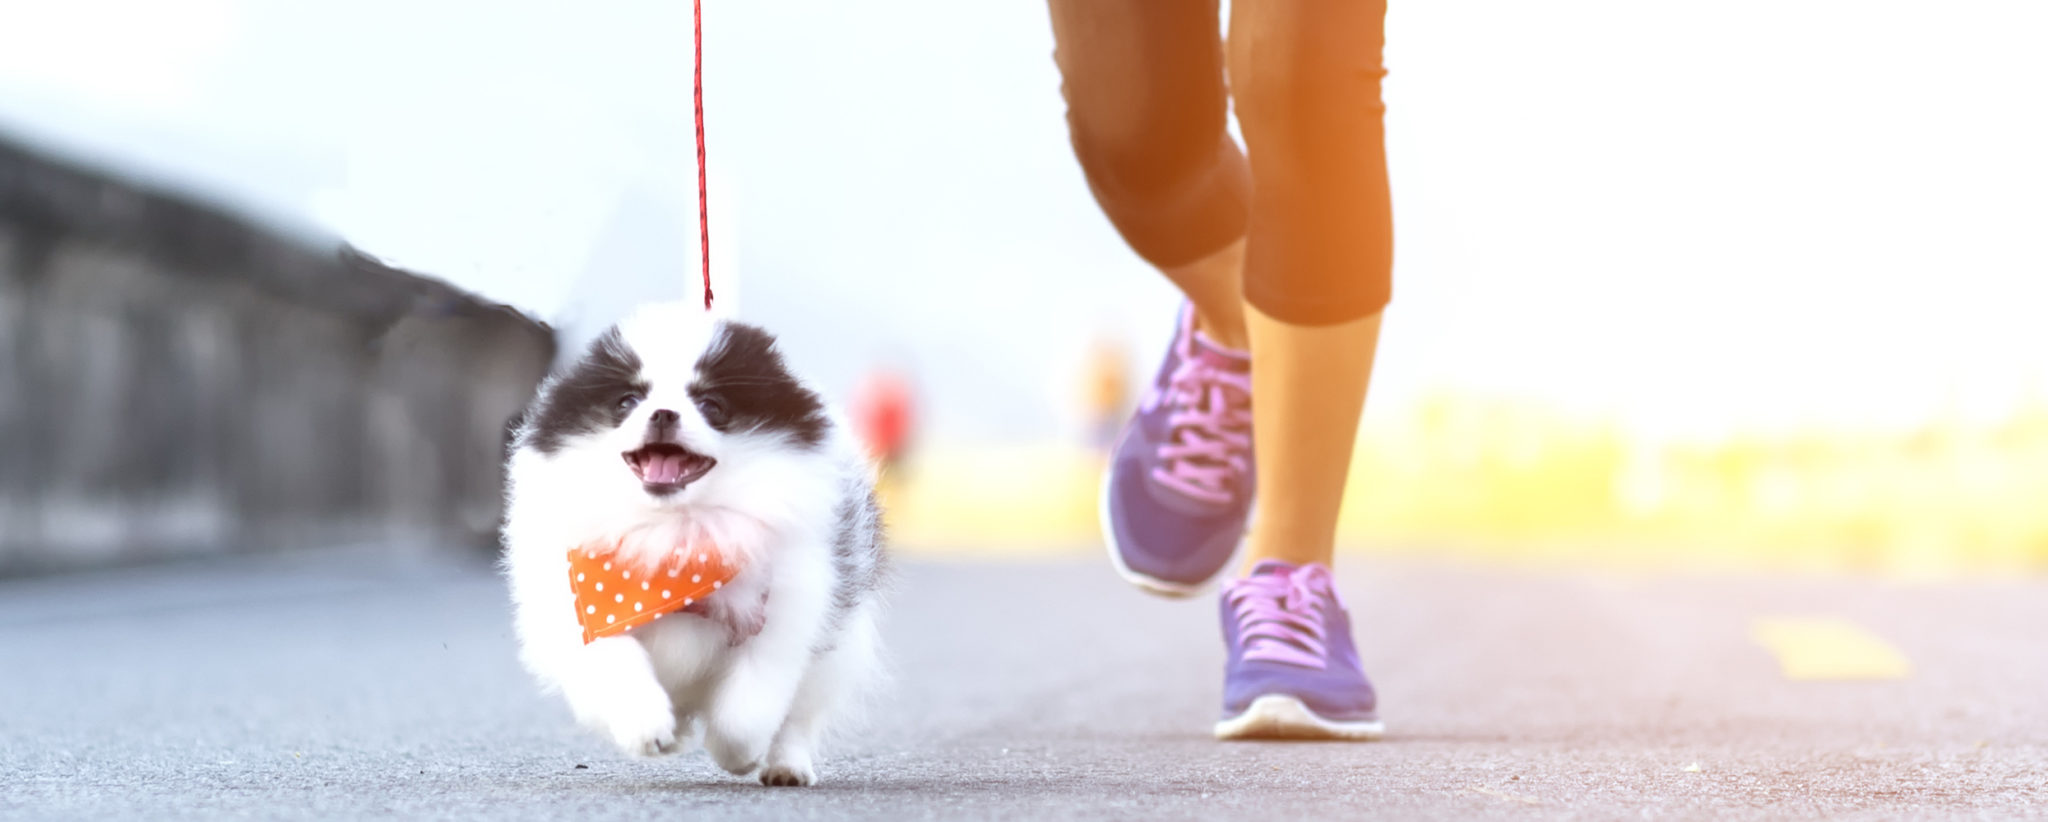 running-with-your-dog.jpg